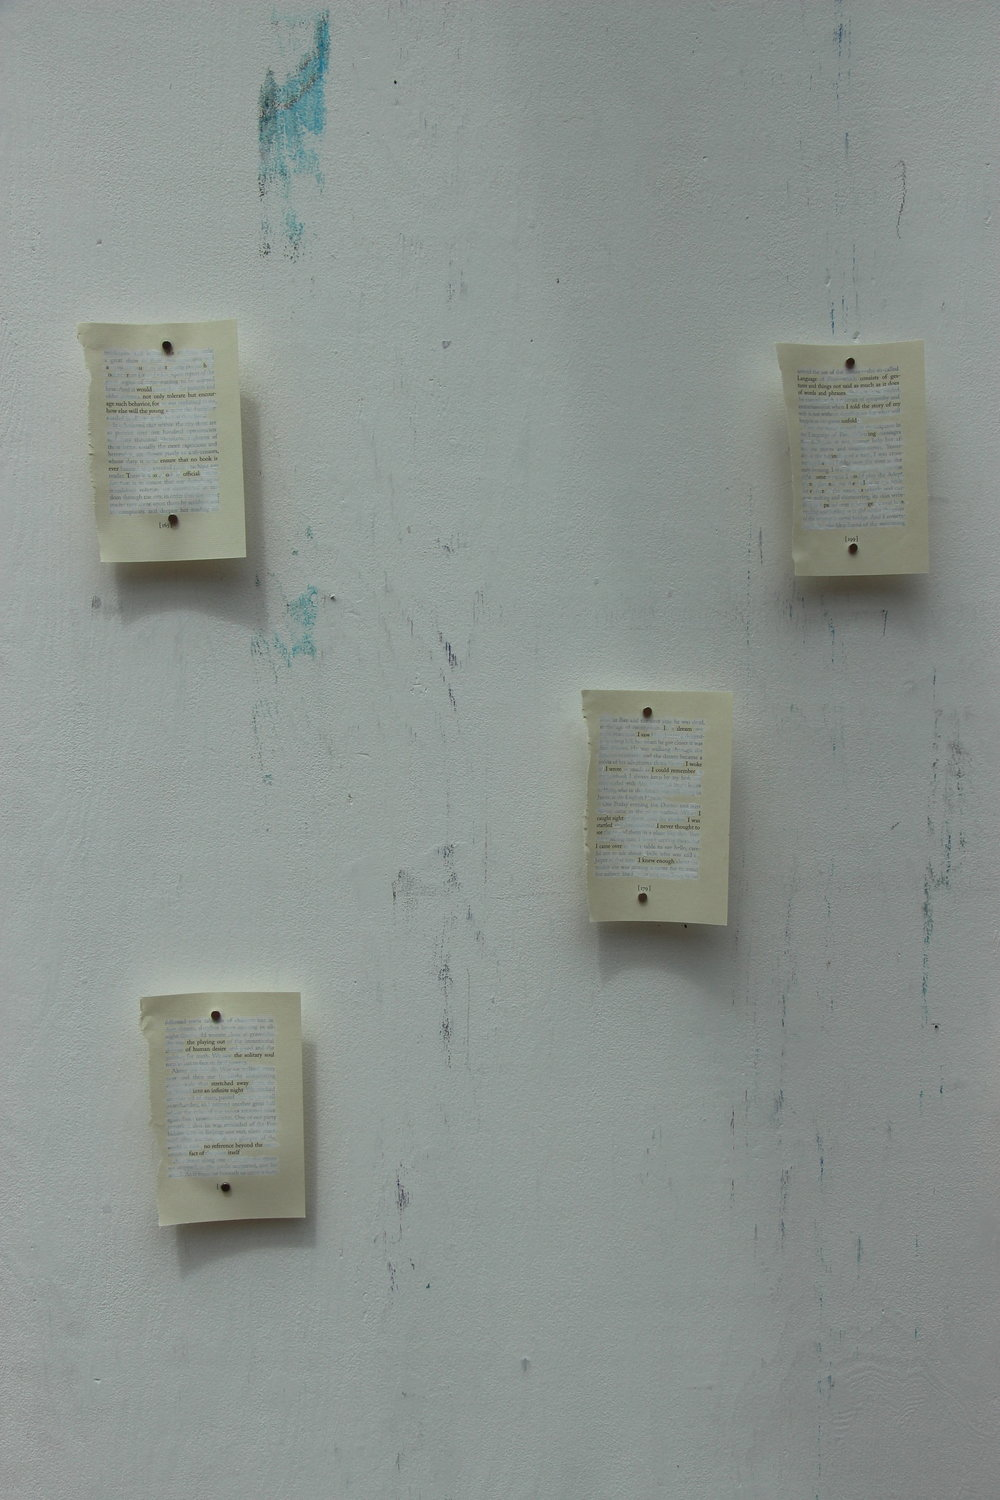 Not All That We've Been Told - Erasure Poetry Workshop - Polly Or_1967.JPG